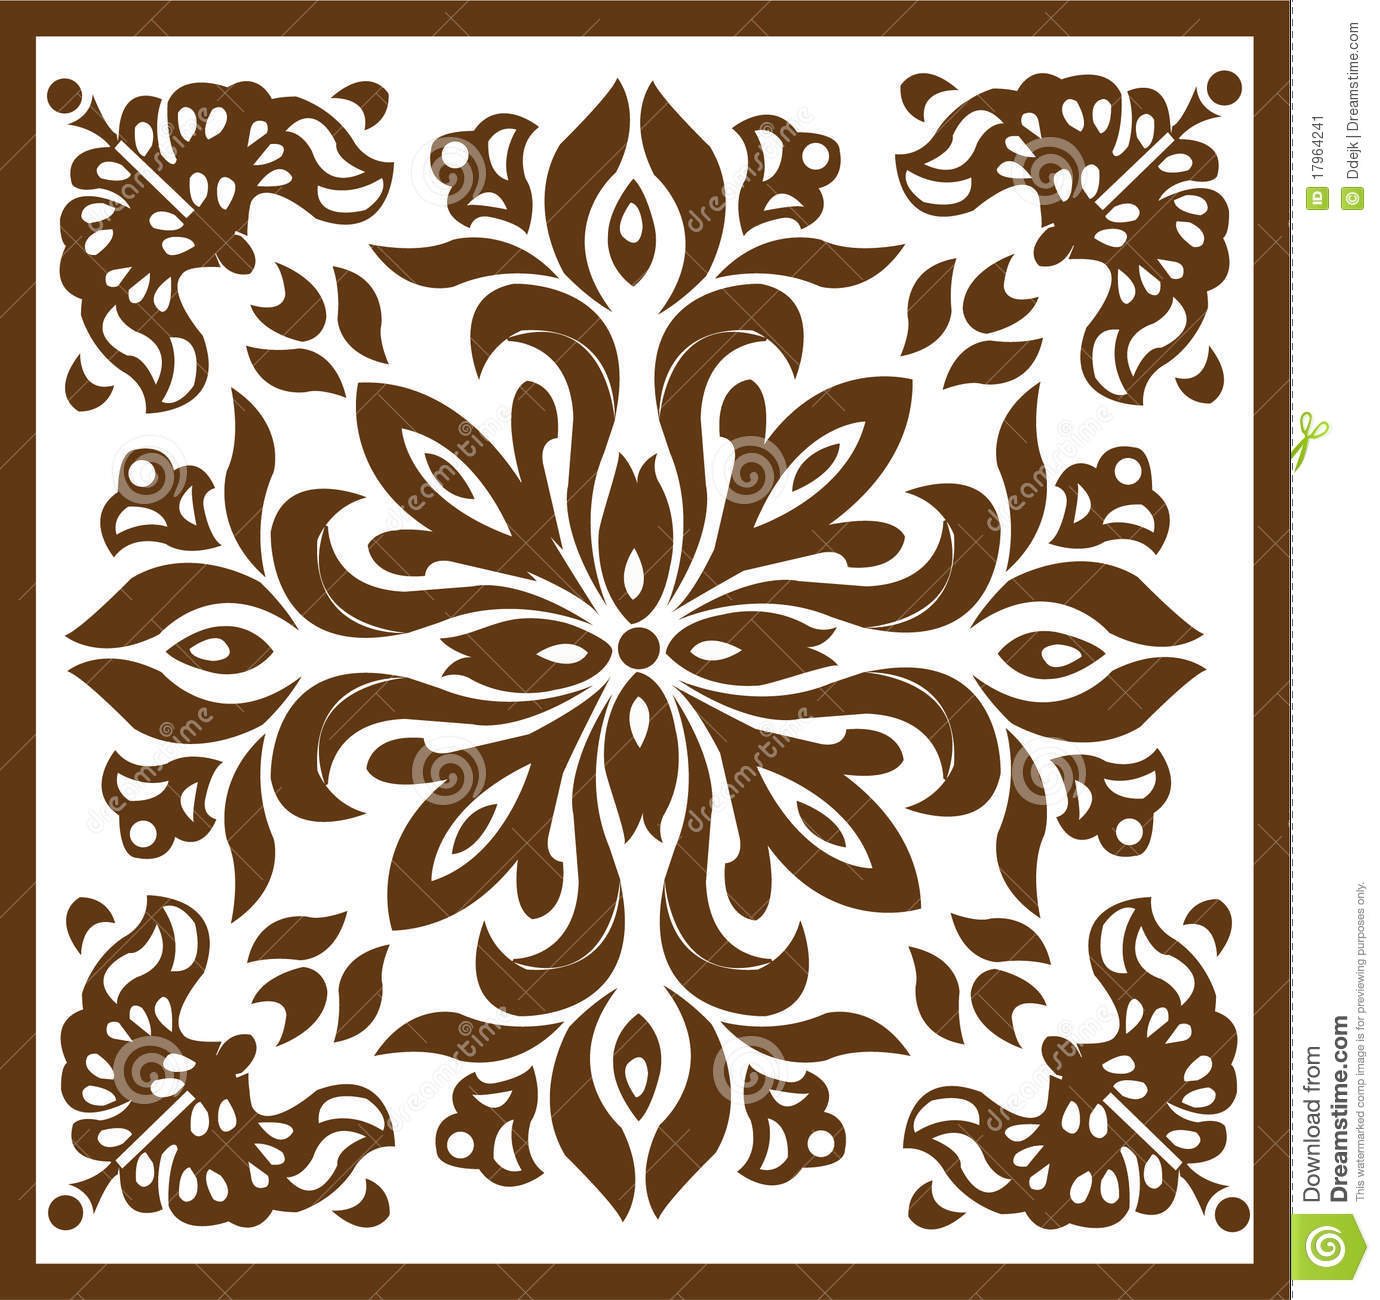 Wood Carving Stock Image - Image: 17964241